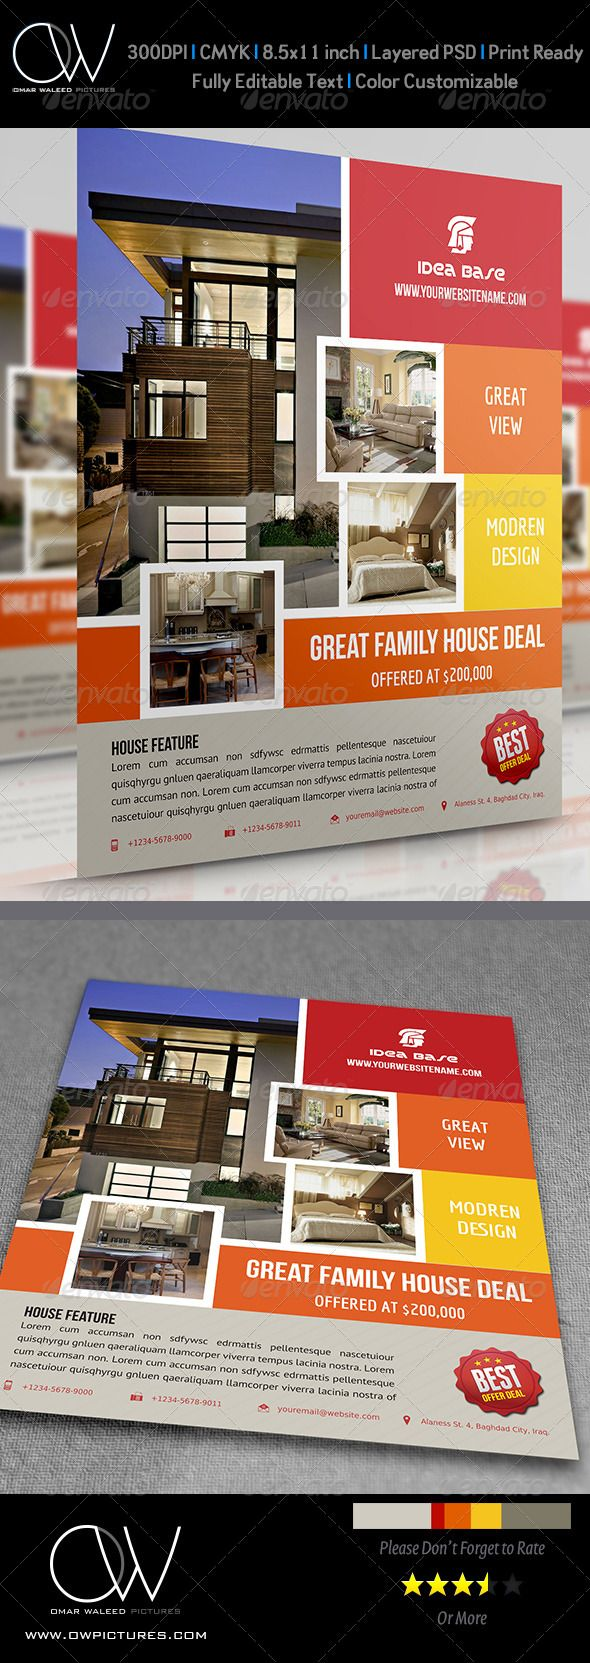 #Real #Estate Flyer Vol.5 - Commerce #Flyers Download here: https://graphicriver.net/item/real-estate-flyer-vol5/4669832?ref=alena994